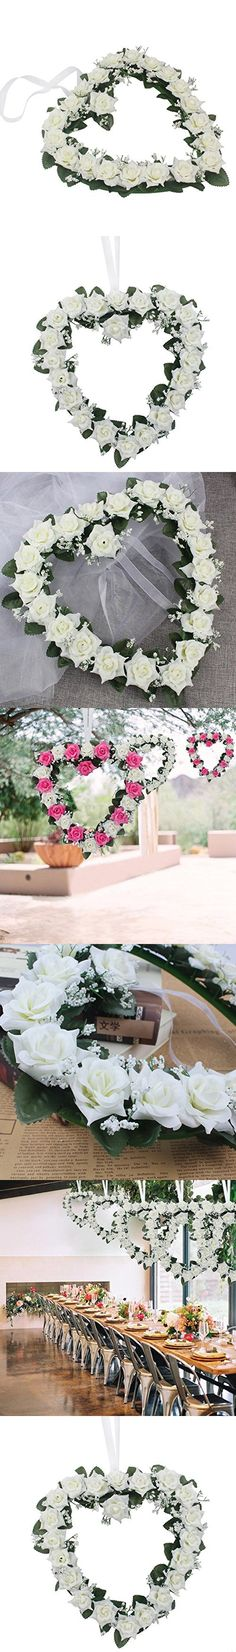 Adeeing 3PCS Heart-Shaped Rose Door Wall Hanging Wreaths Wedding Festival Decoration White